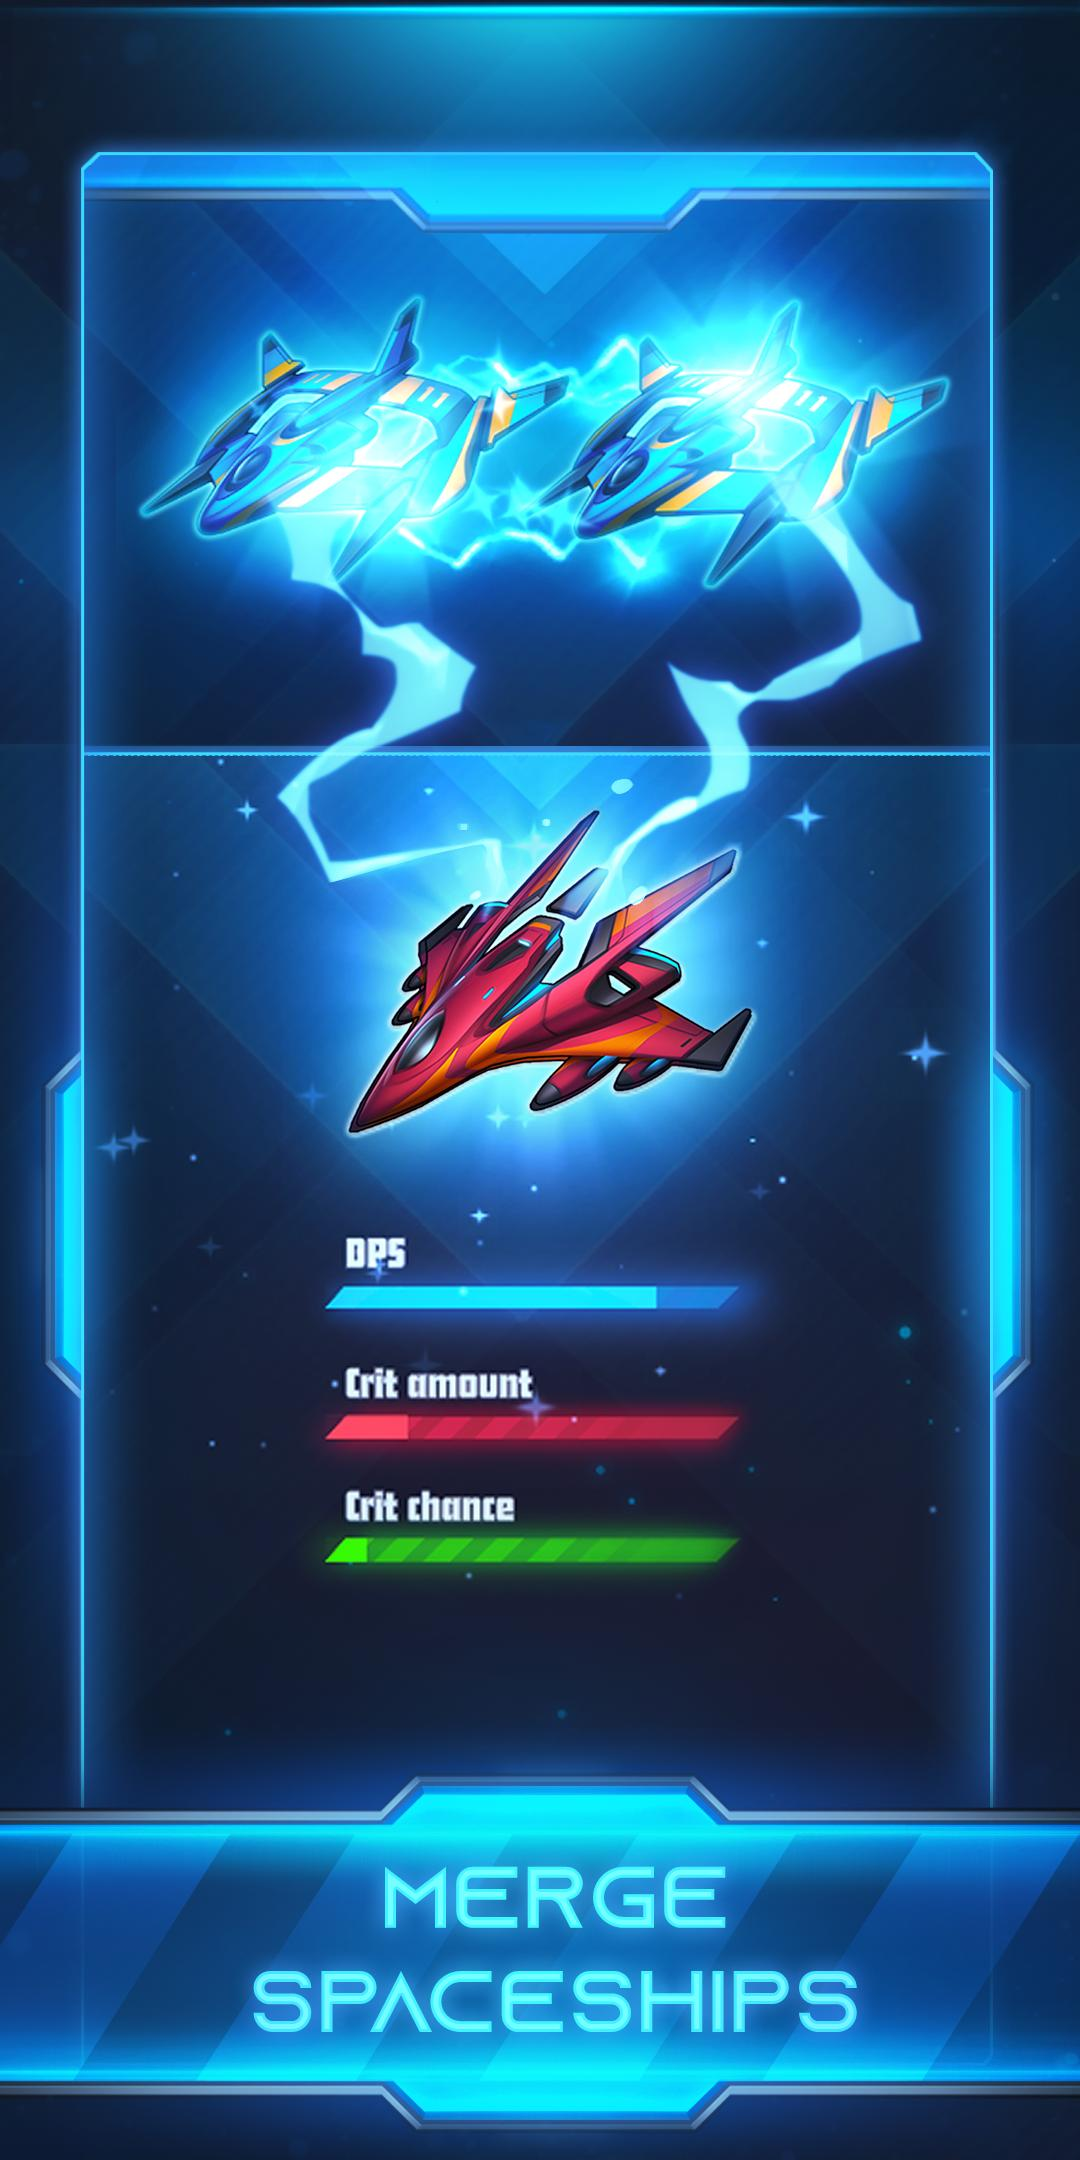 Galaxy Merge for Android - APK Download